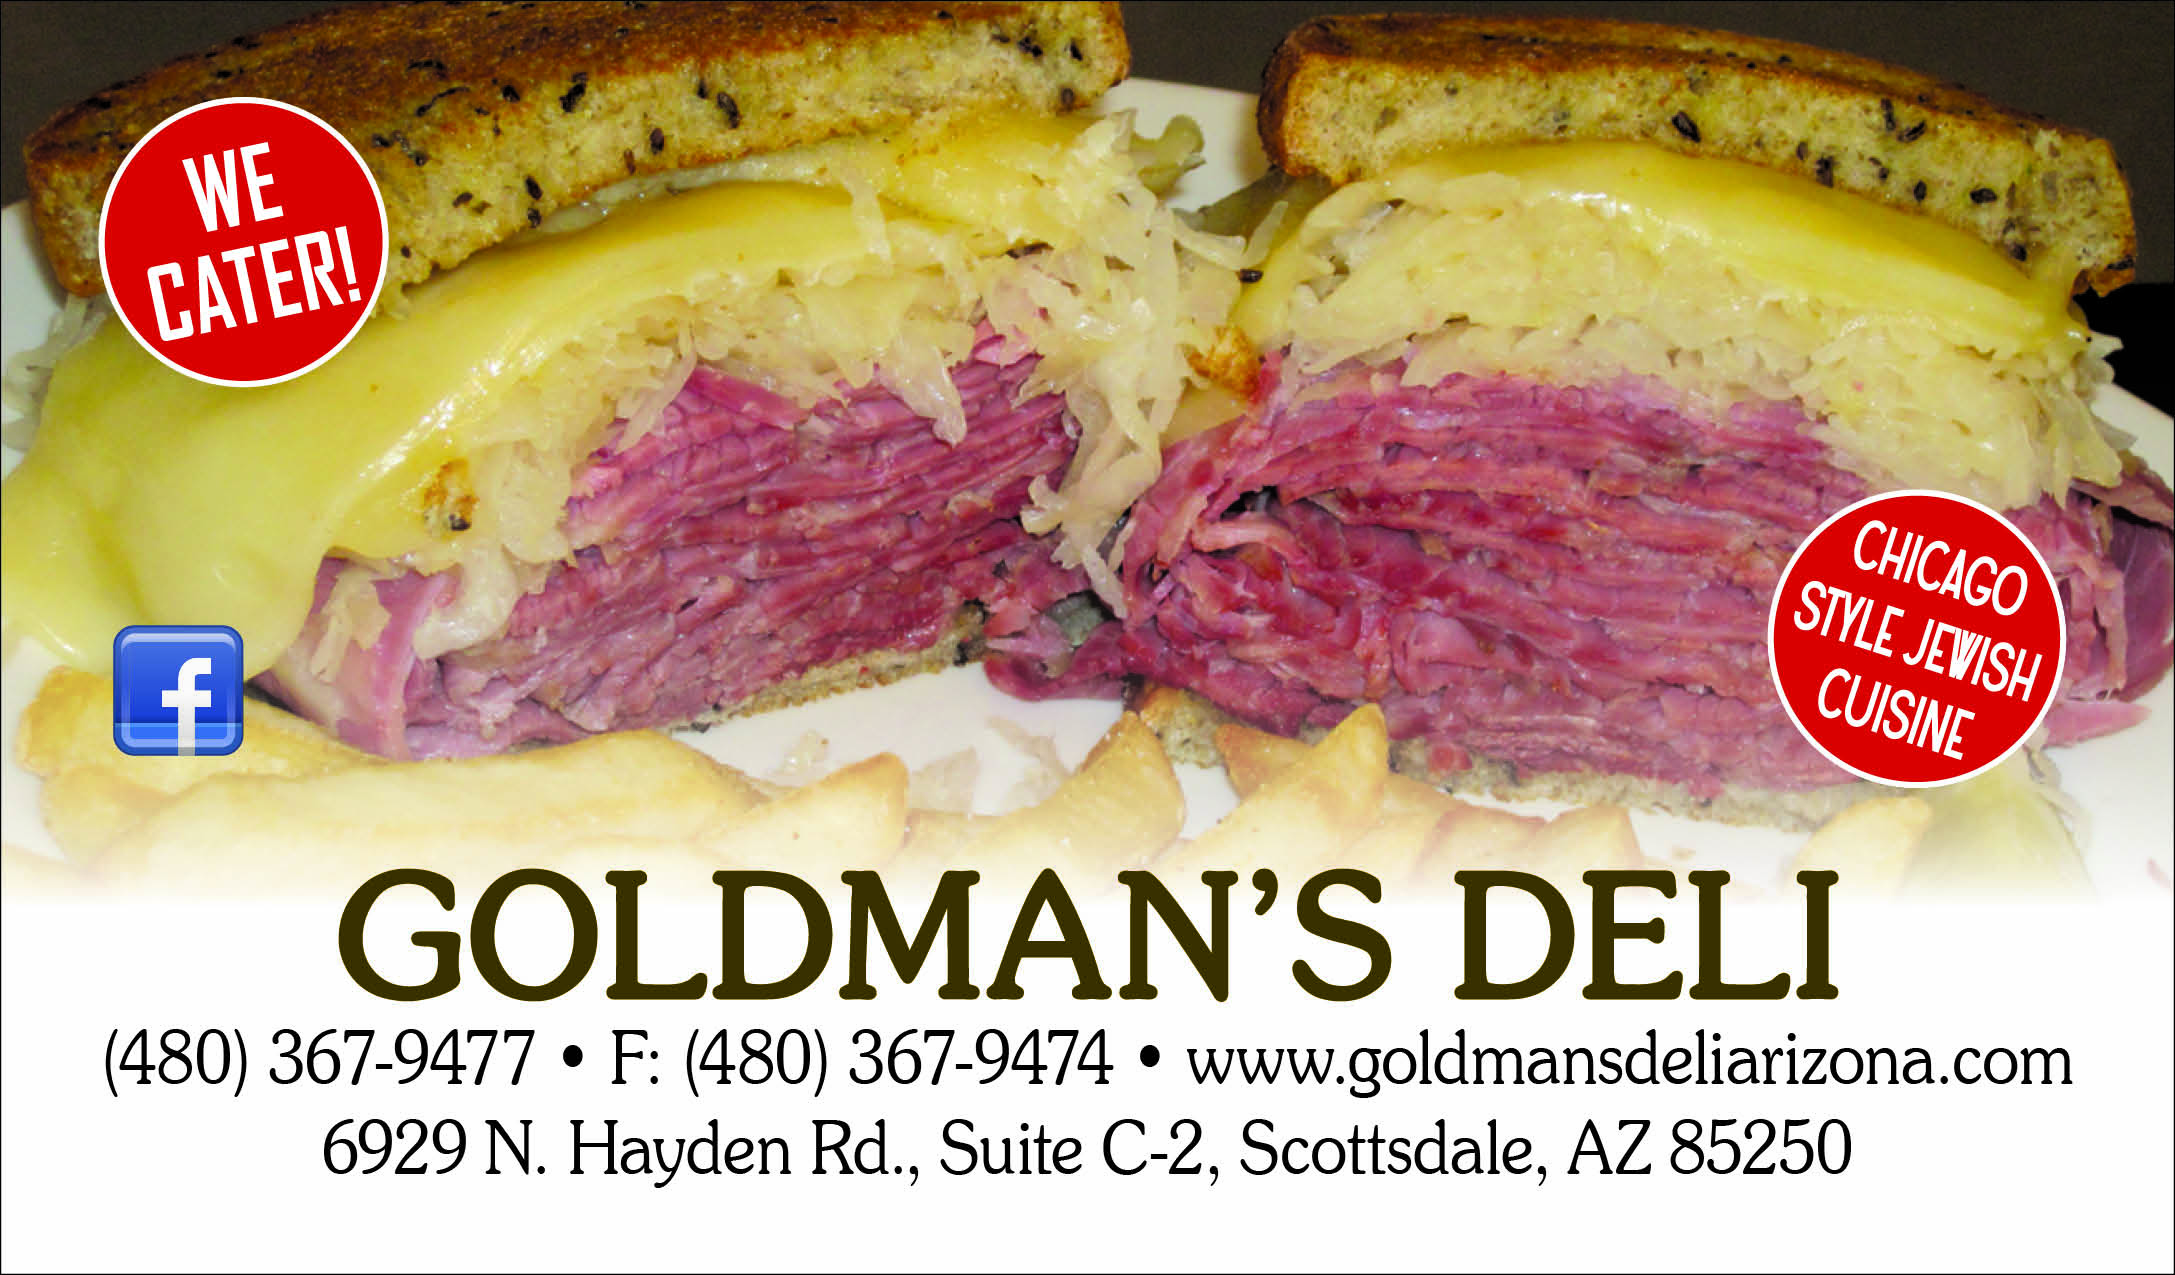 Goldmans Deli, business card redesign, front side